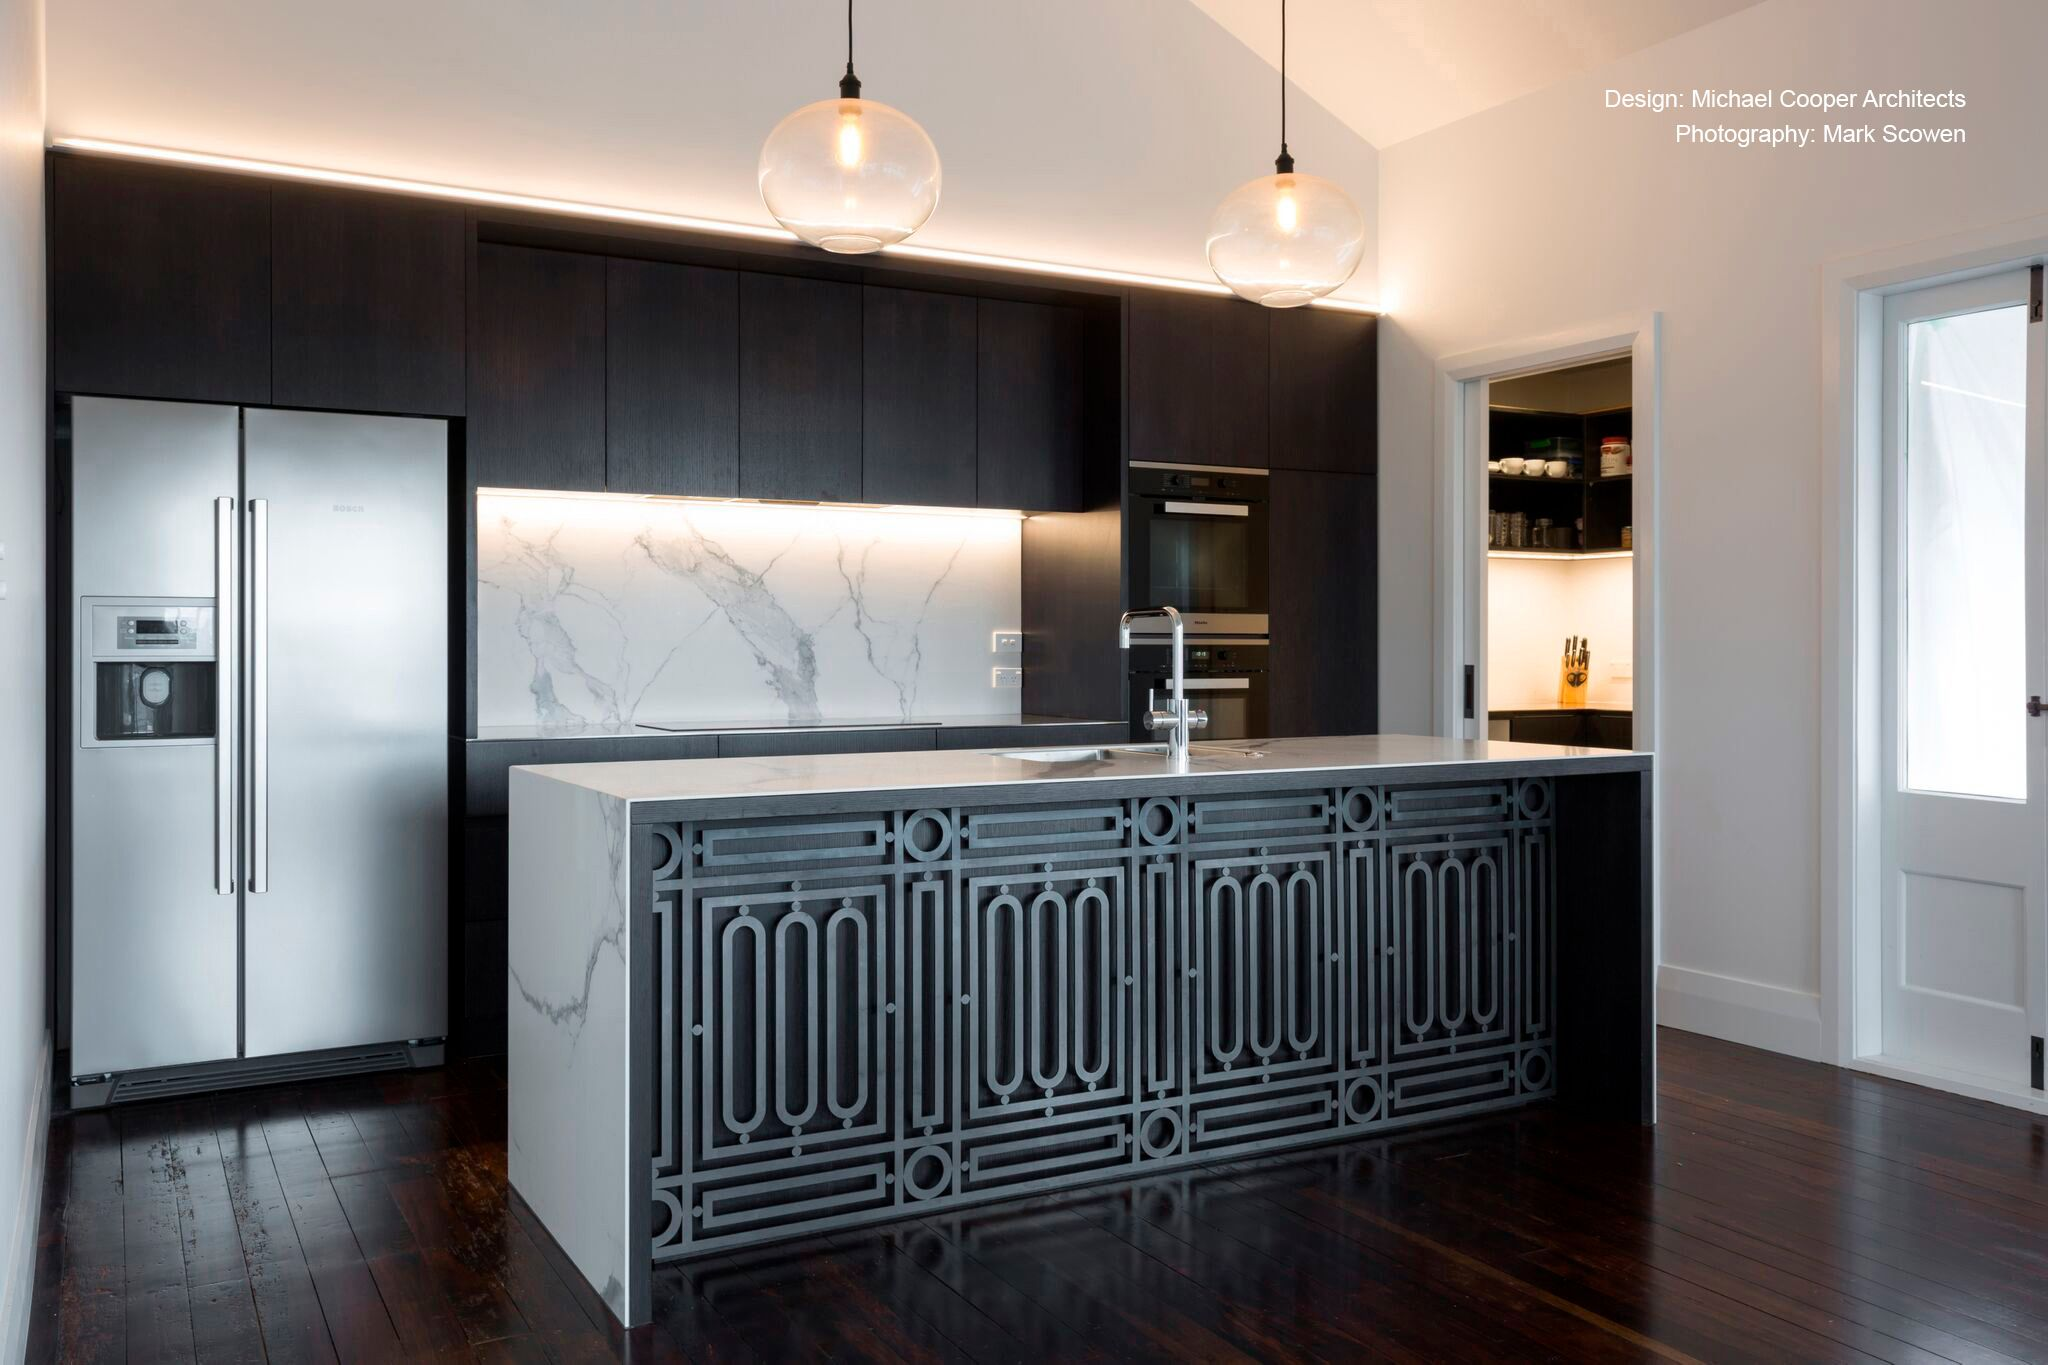 This monochromatic kitchen island quickly the